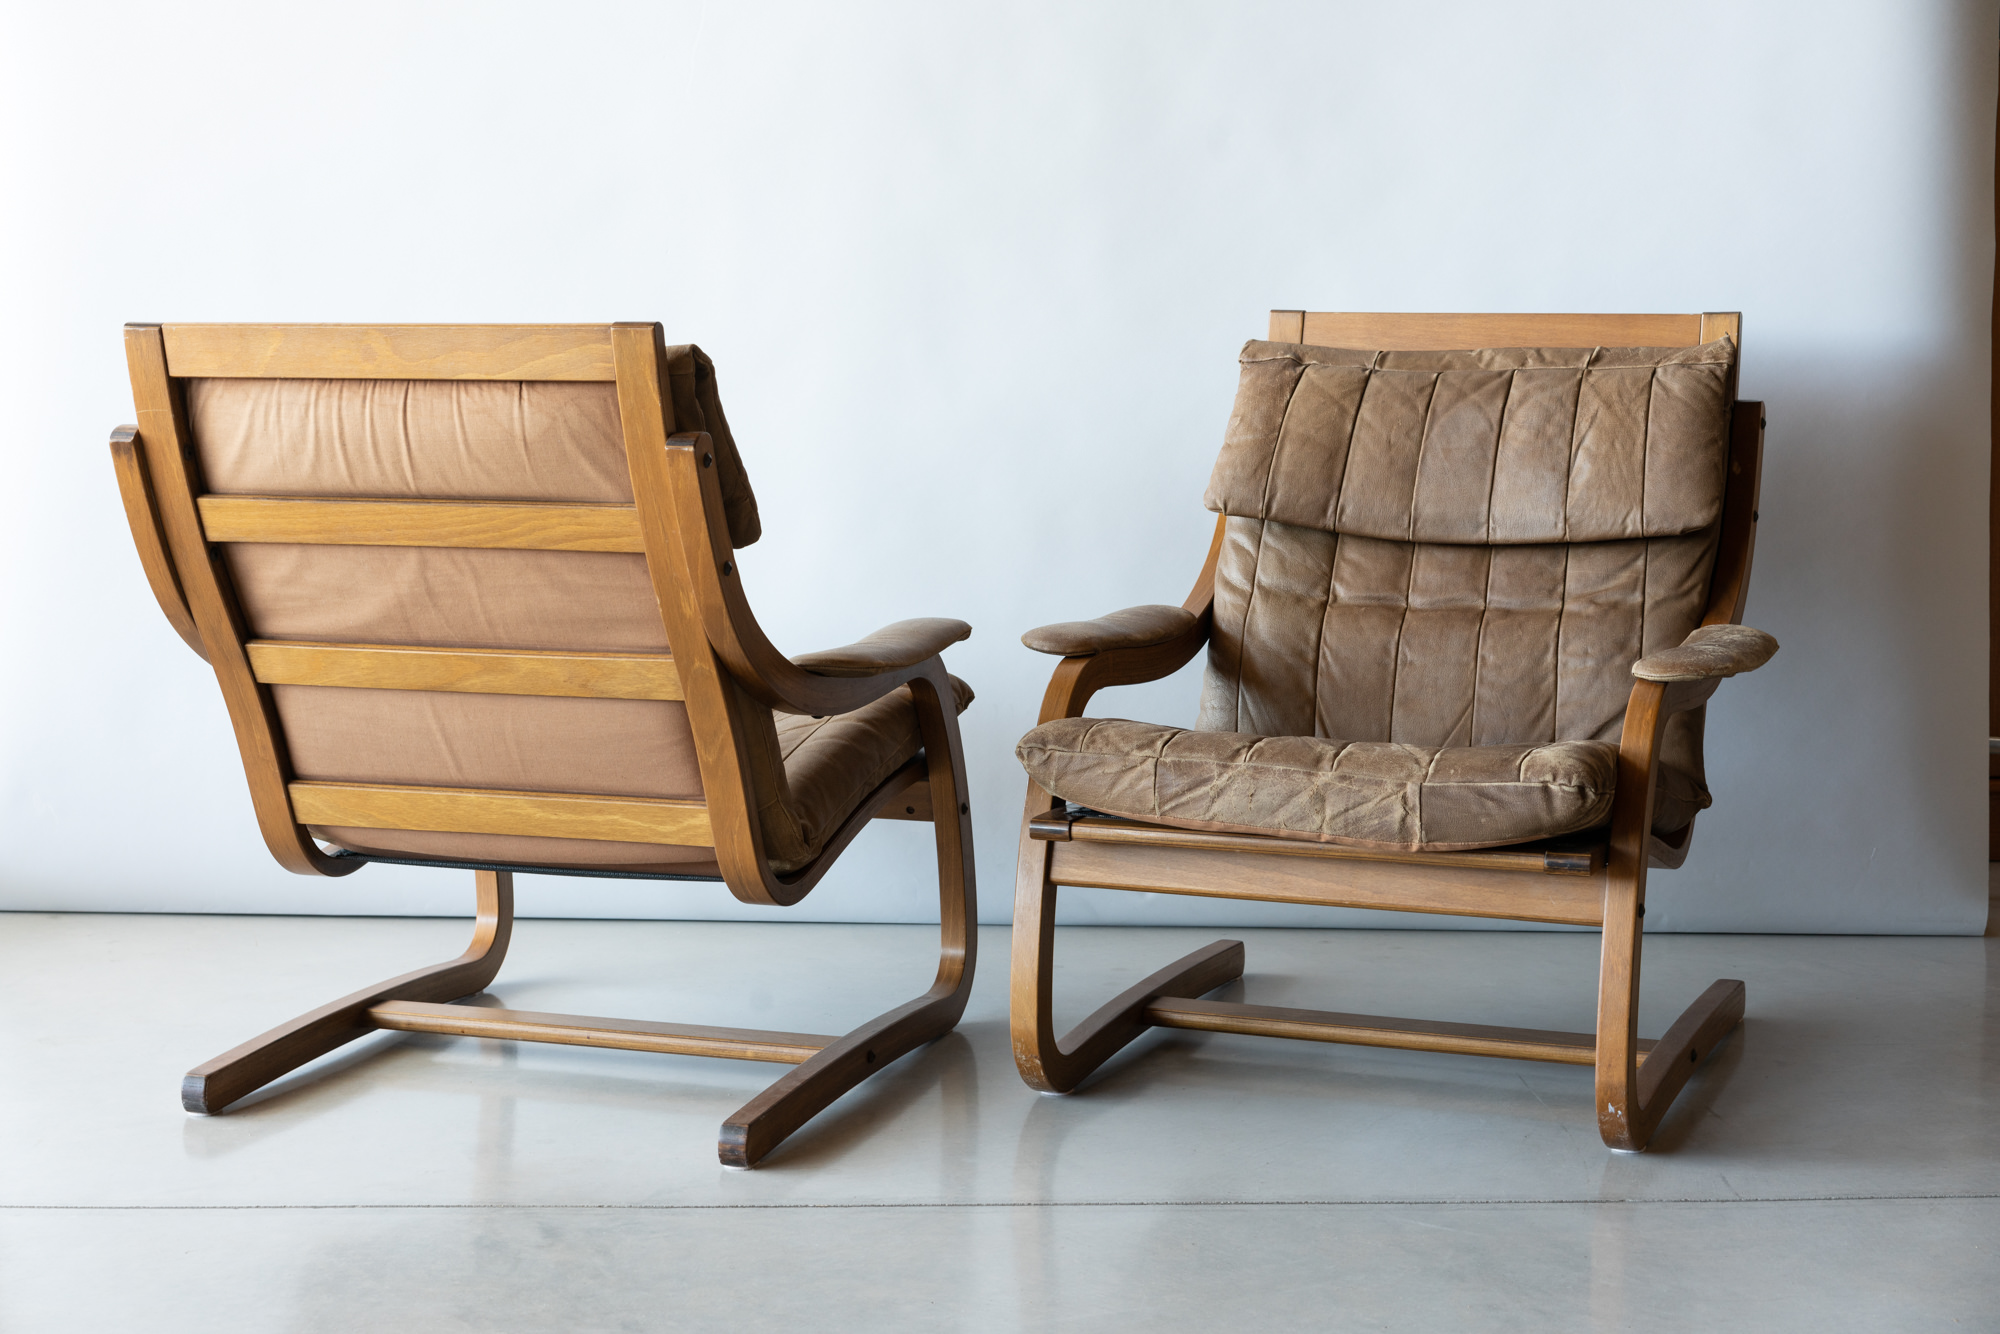 Stouby Polster Lounge Chair Set - $1,095